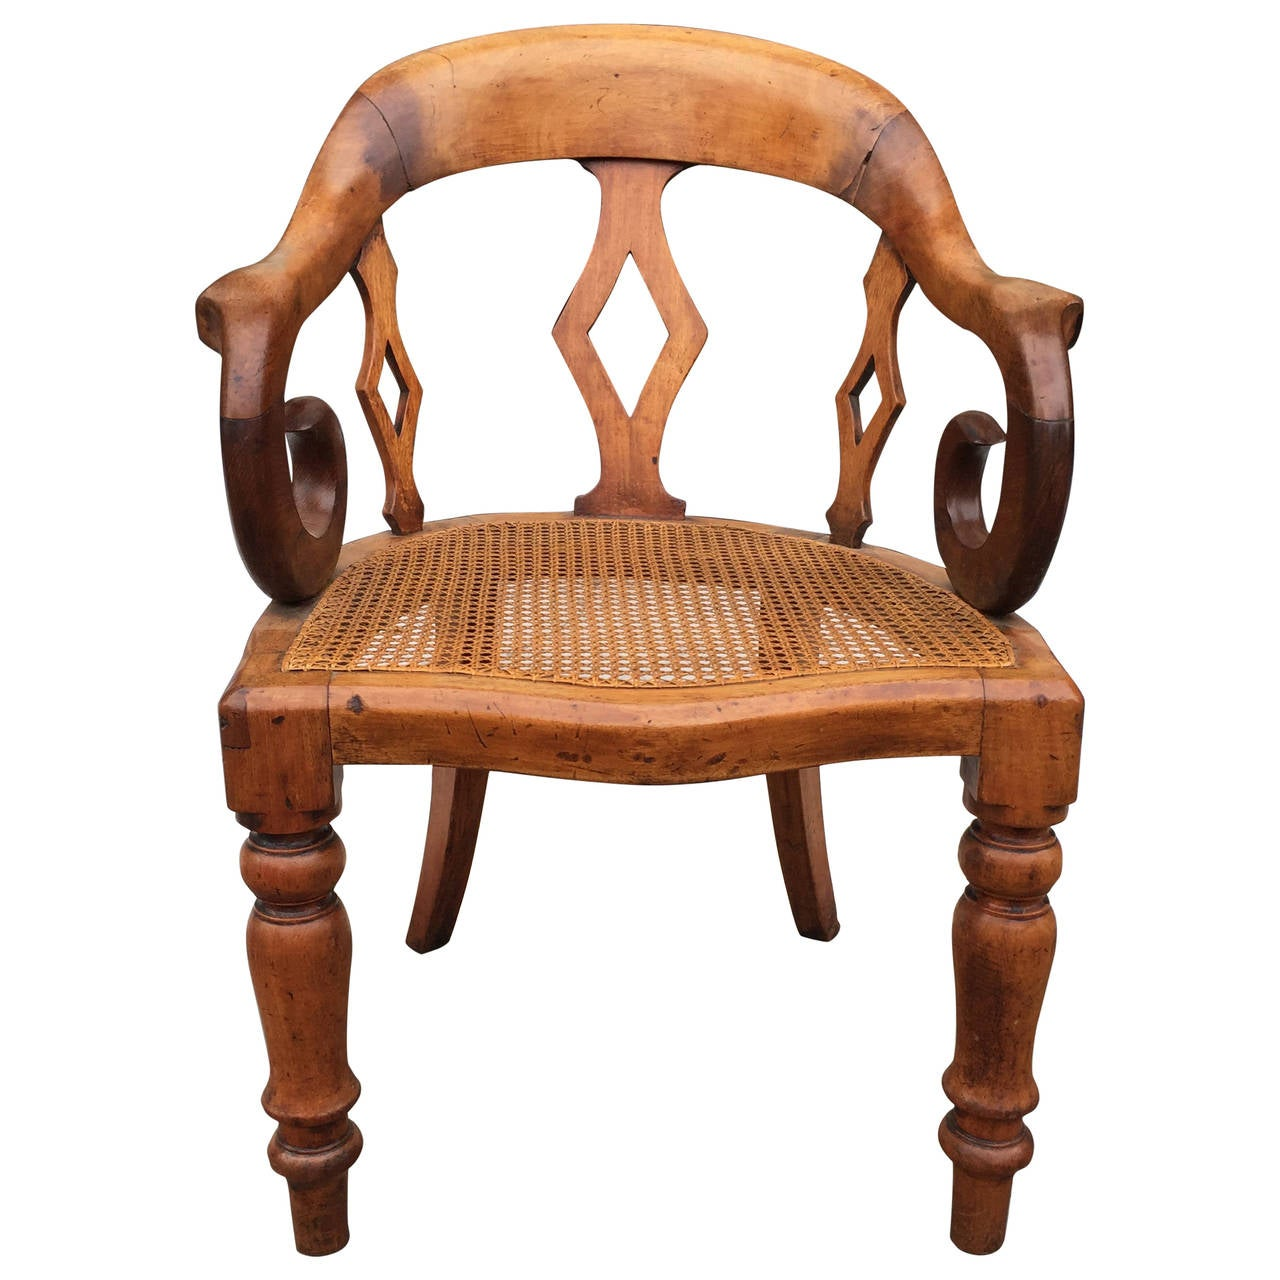 19th century English walnut with cane bottom arm chair at  : 3100172l from www.1stdibs.com size 1280 x 1280 jpeg 138kB